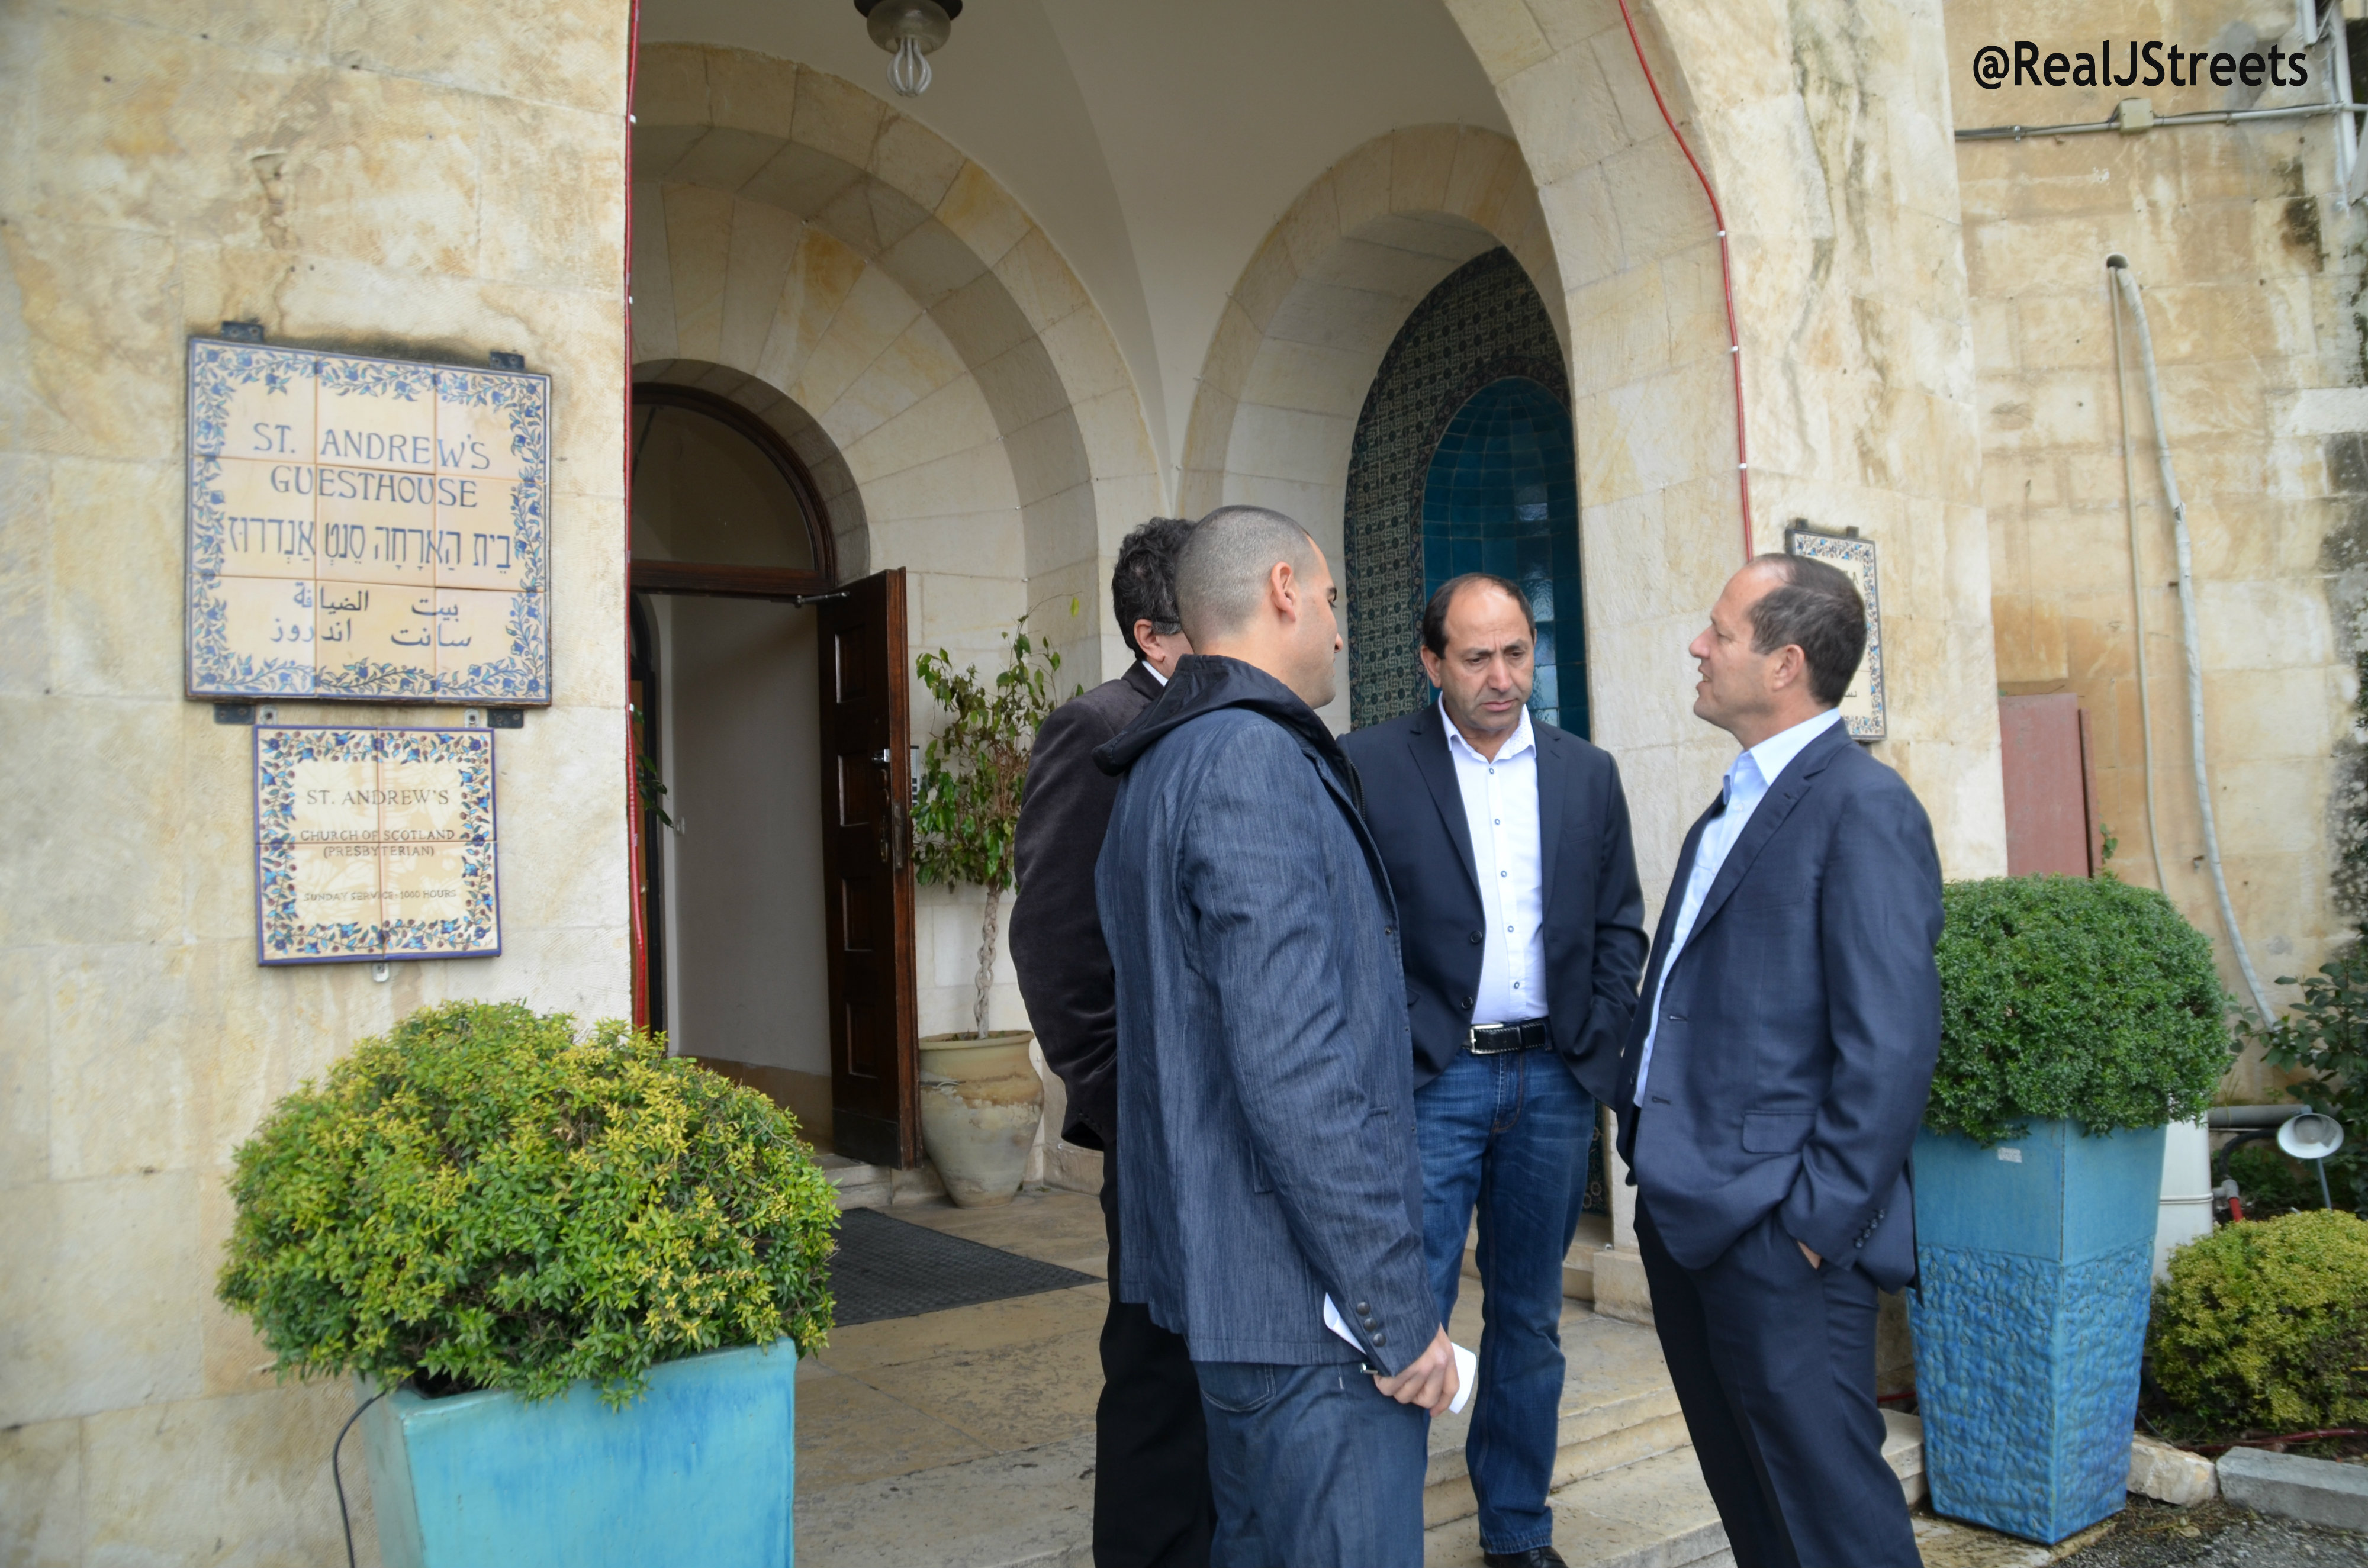 image Nir Barkat and Rami Levy